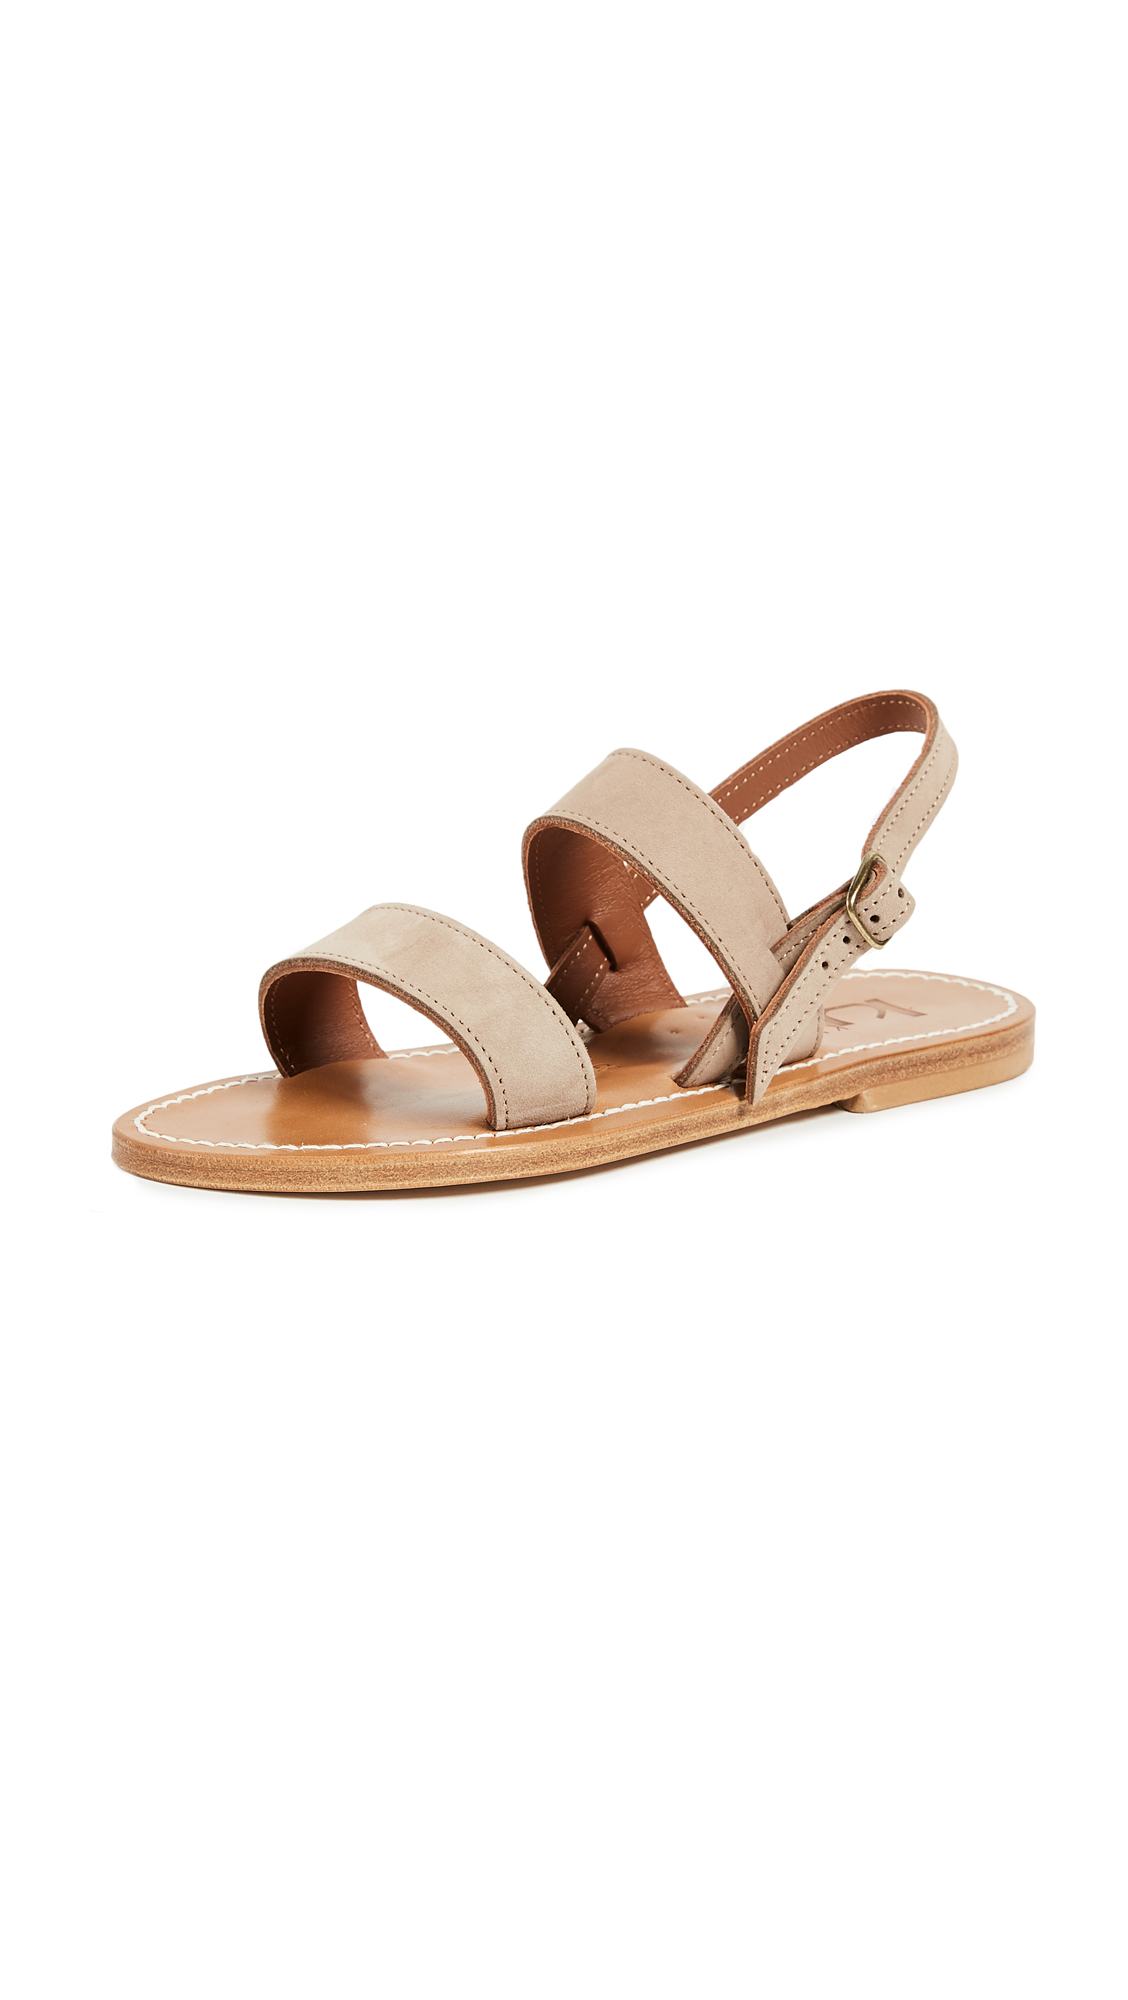 K. Jacques Barigoule Sandals - Nubuck Crosta